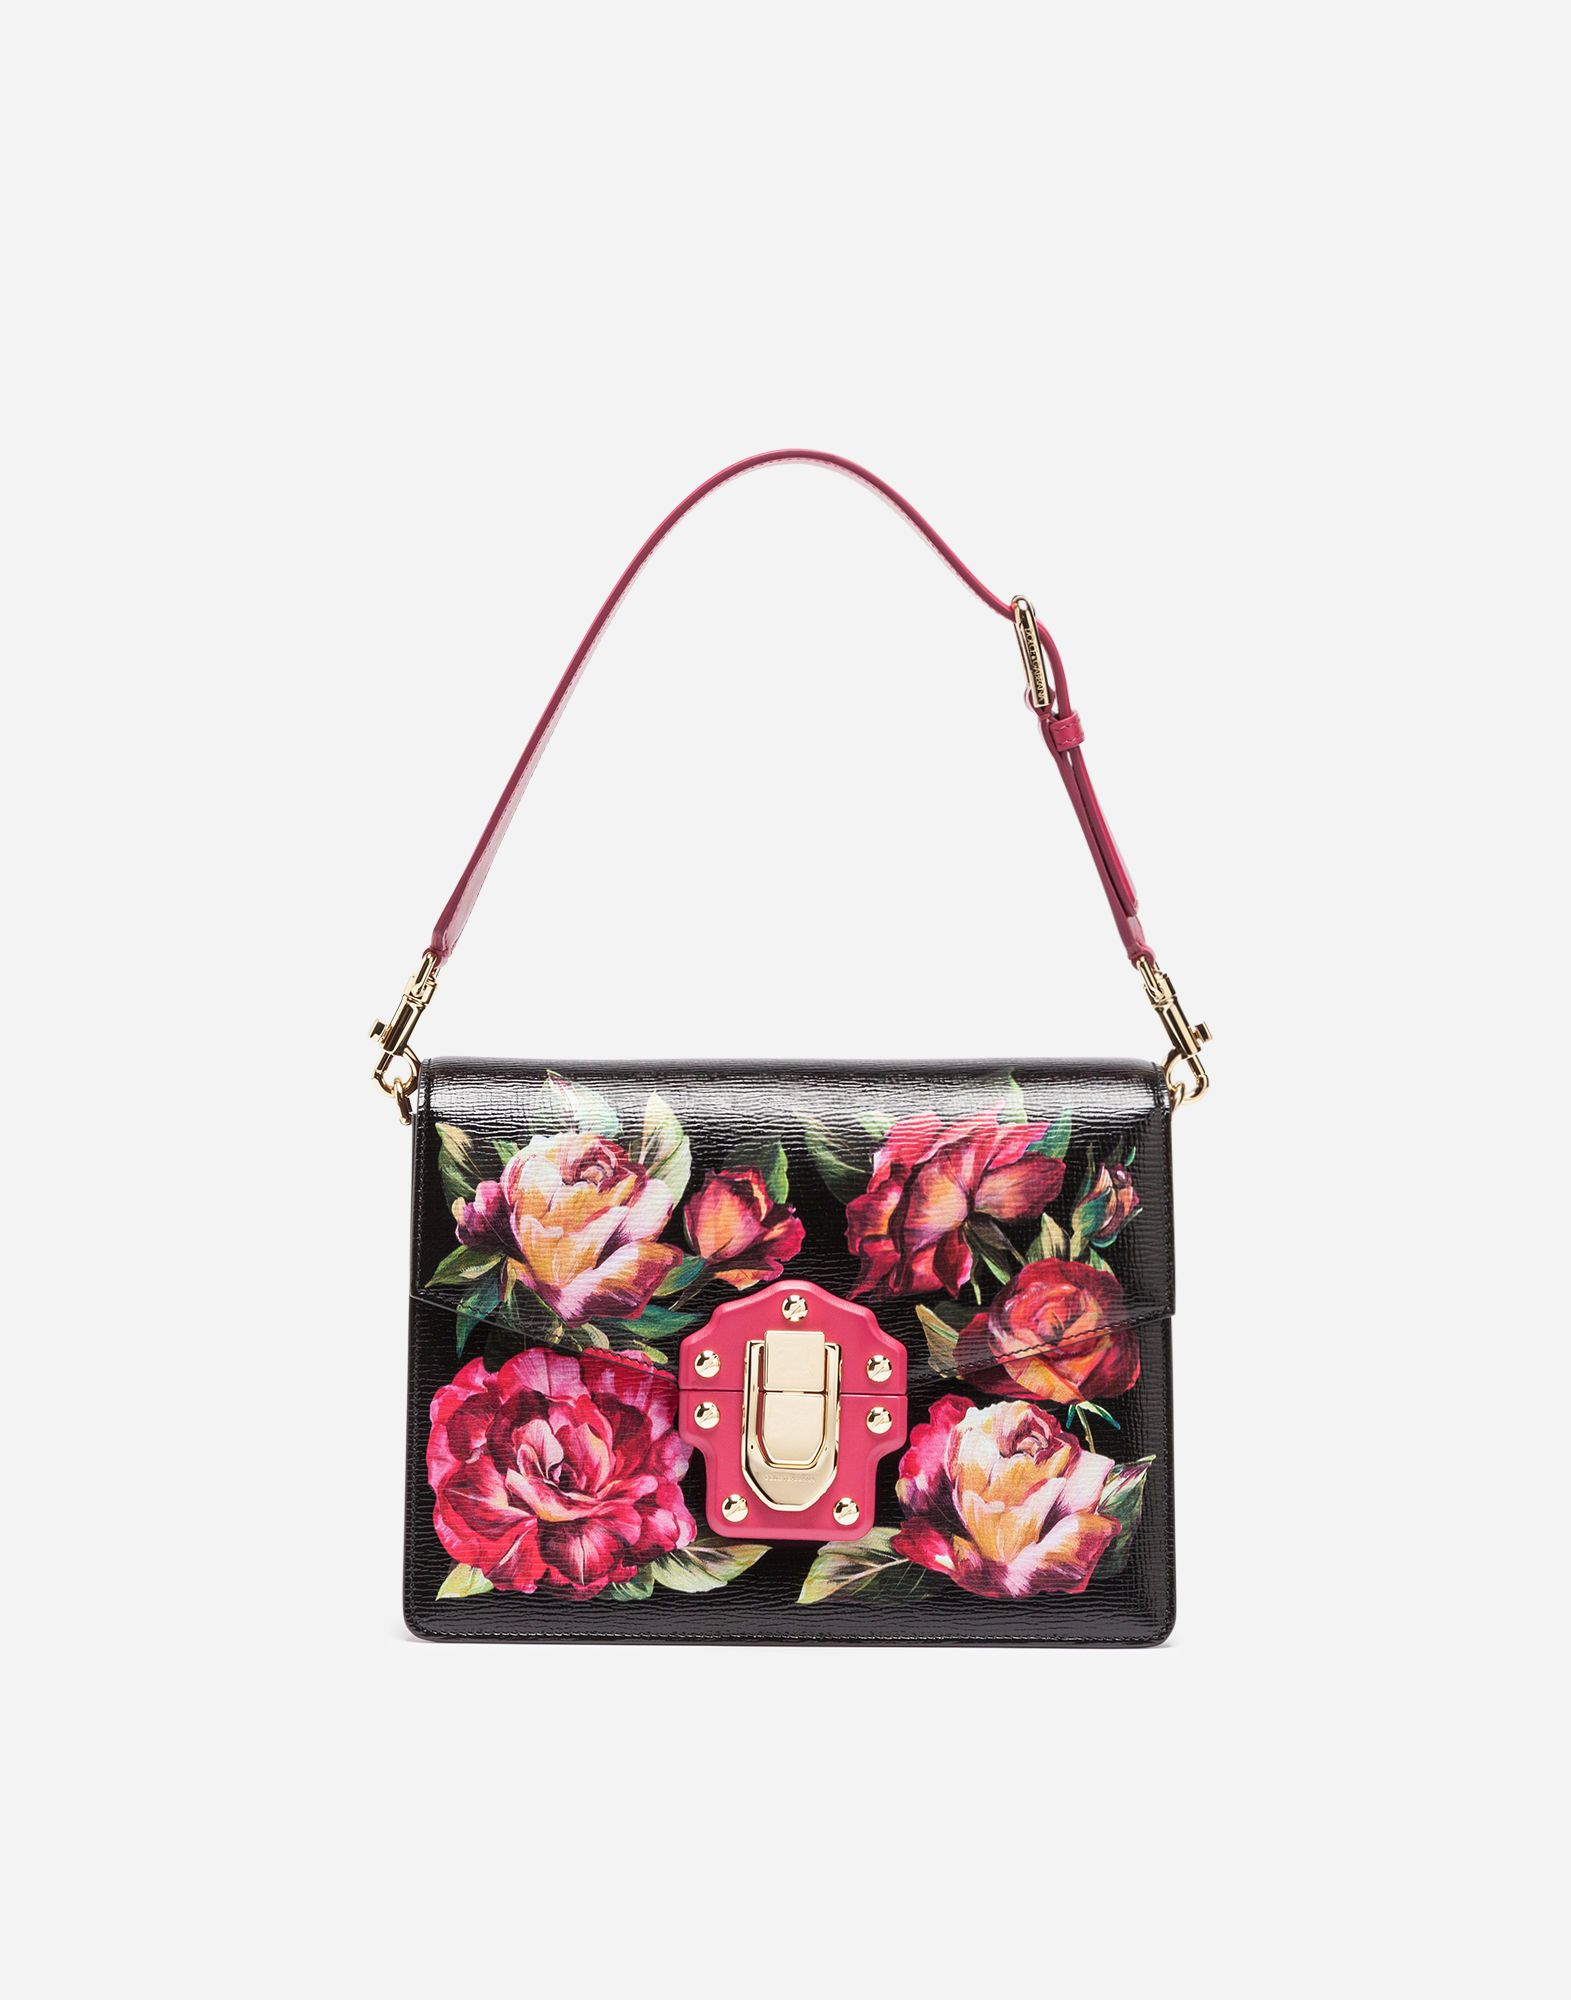 22684bb041 DOLCE & GABBANA PRINTED LEATHER LUCIA SHOULDER BAG. #dolcegabbana #bags #shoulder  bags #leather #